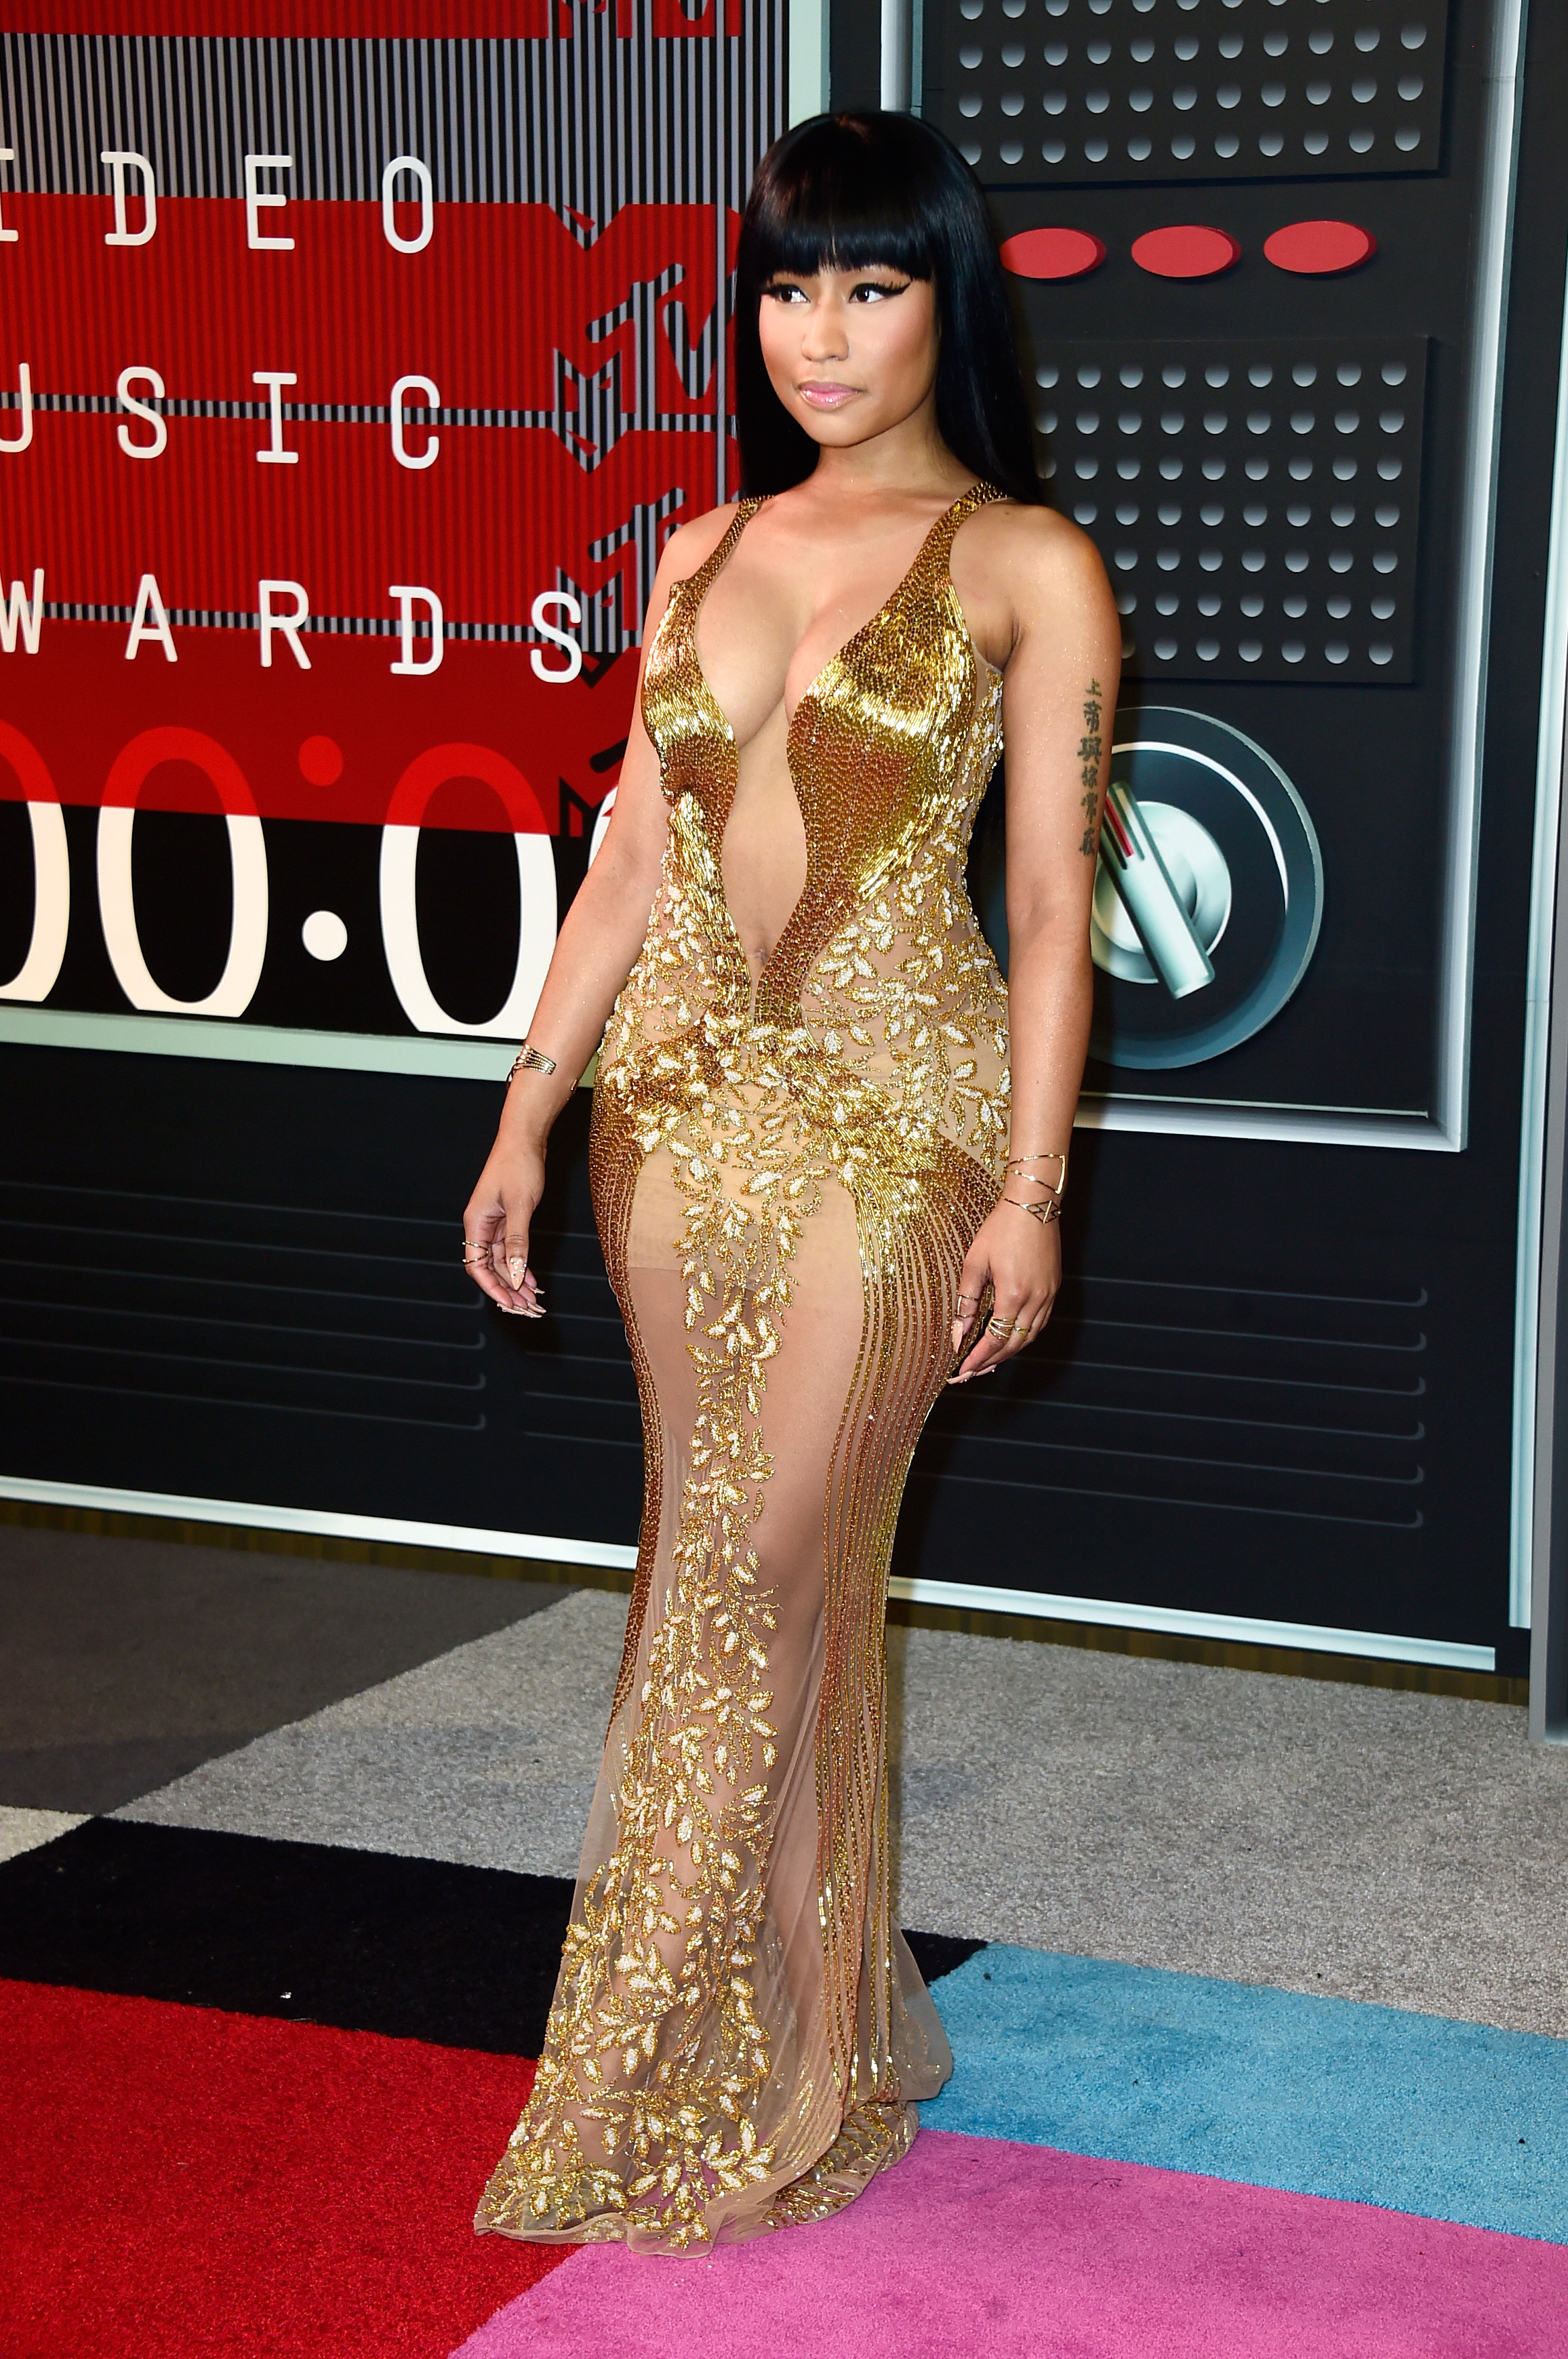 LOS ANGELES, CA - AUGUST 30:  Recording artist Nicki Minaj attends the 2015 MTV Video Music Awards at Microsoft Theater on August 30, 2015 in Los Angeles, California.  (Photo by Frazer Harrison/Getty Images)